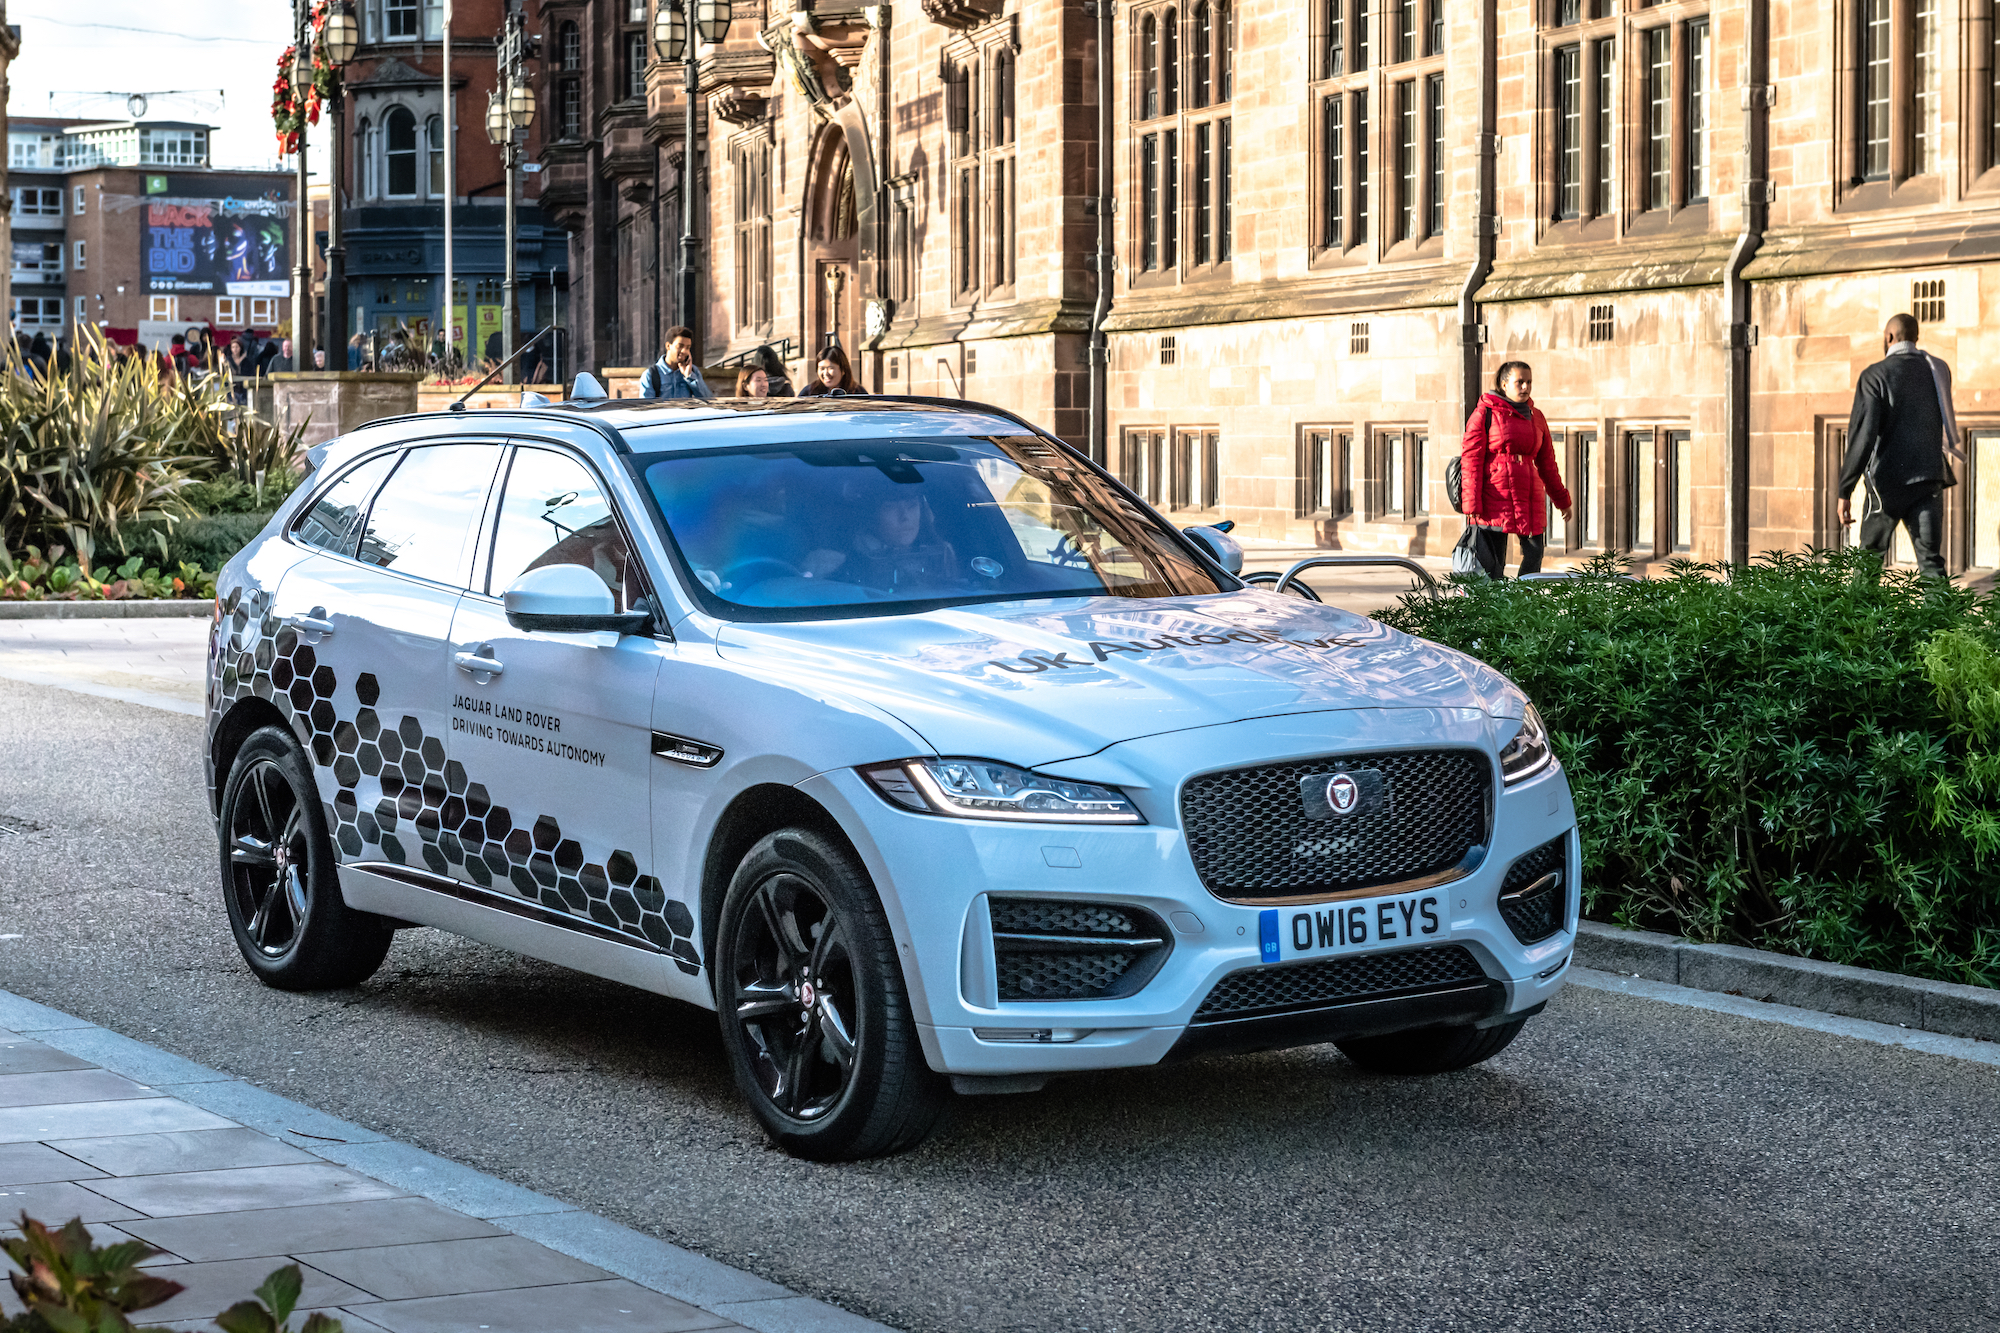 UK's largest autonomous vehicle trial moves onto public roads